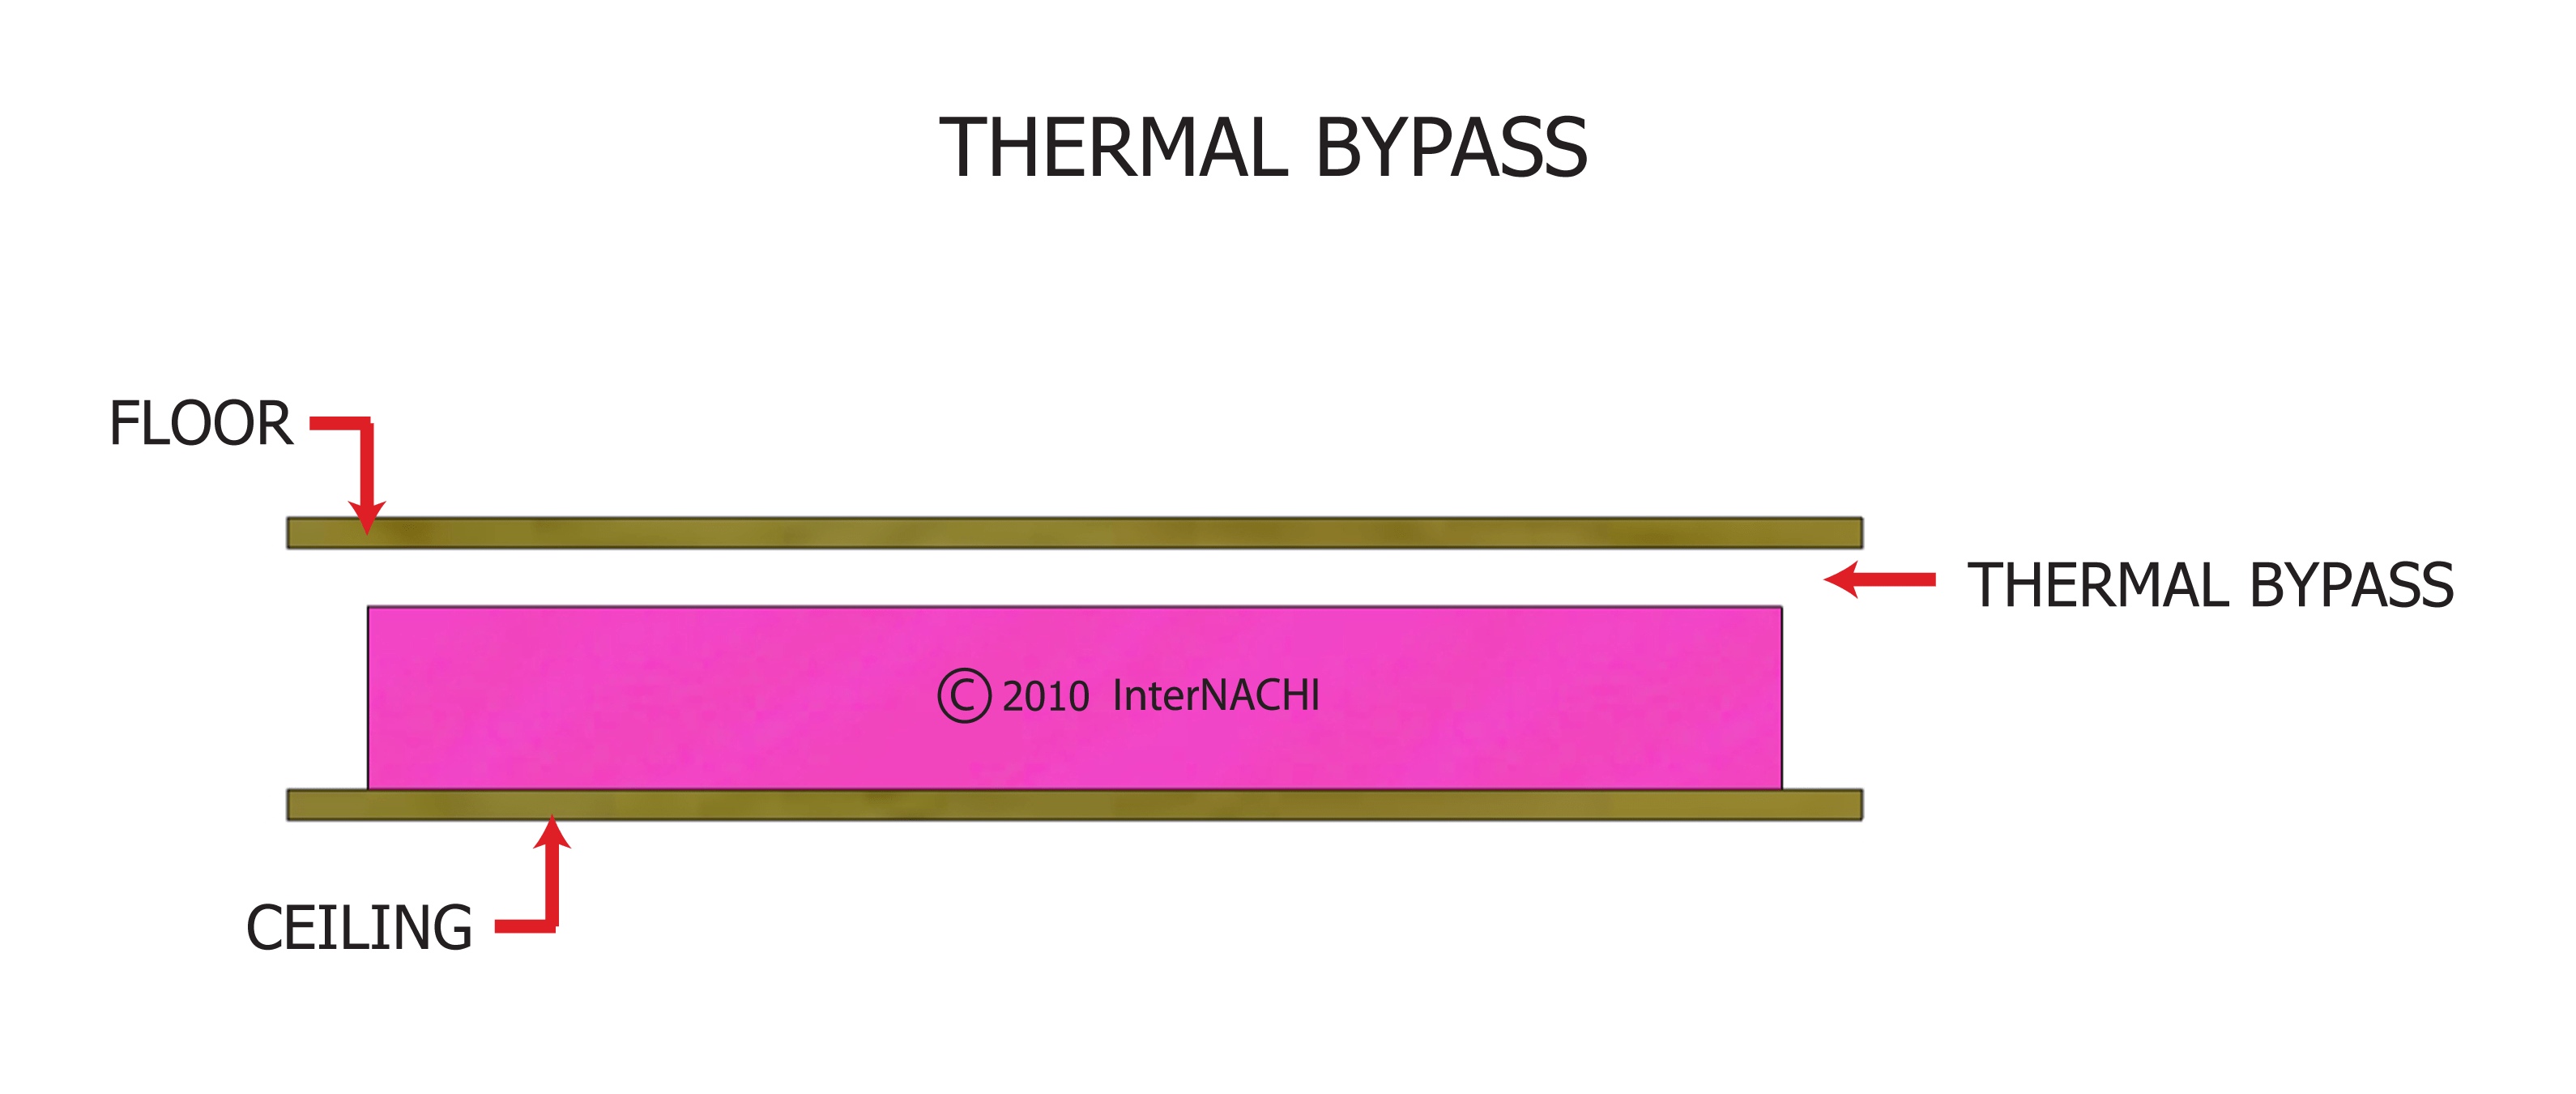 Thermal bypass.